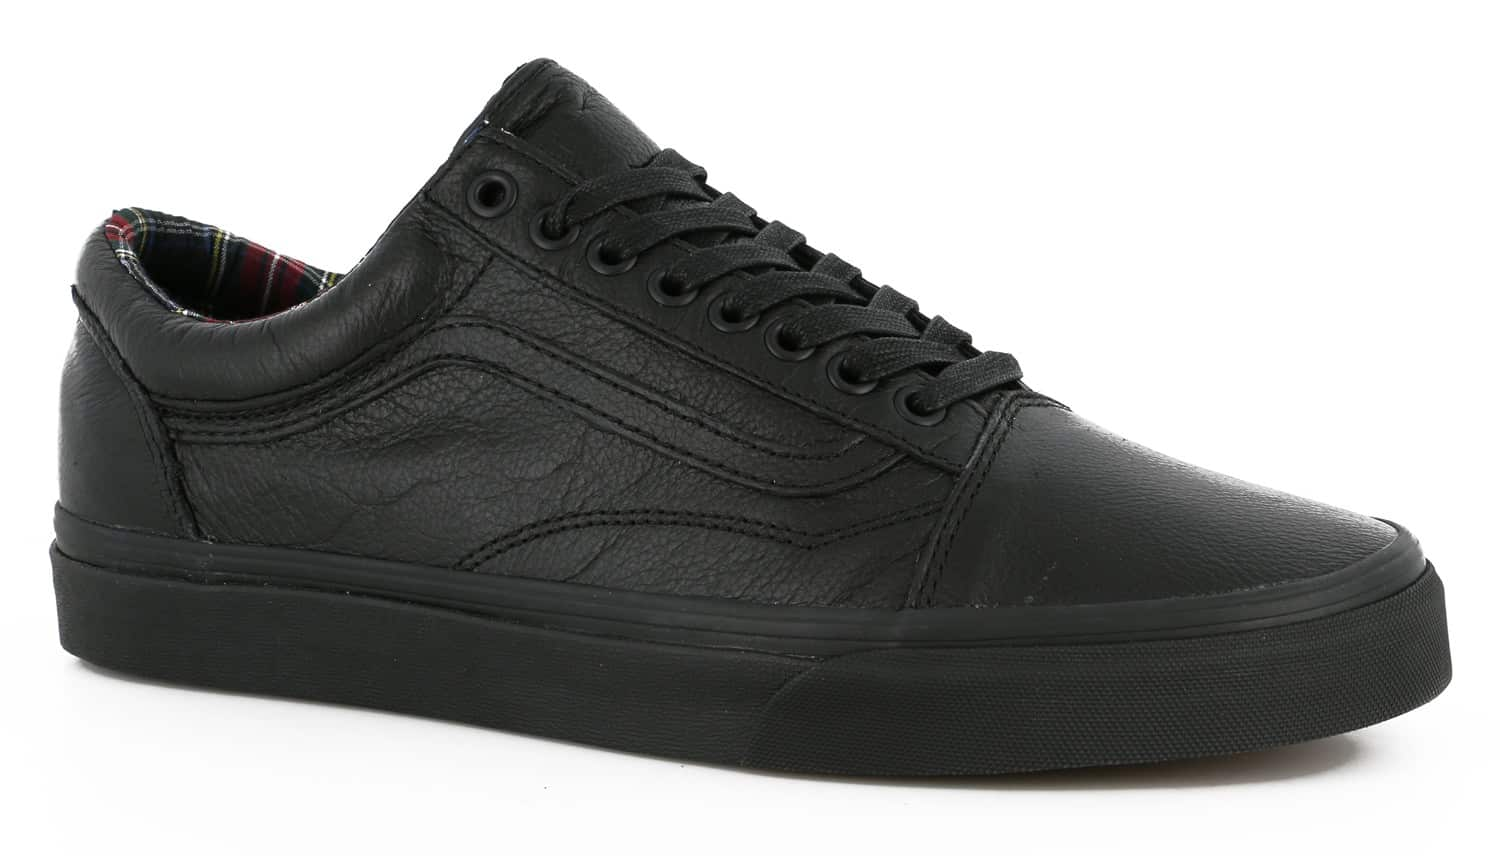 Leather Skate Shoes Review